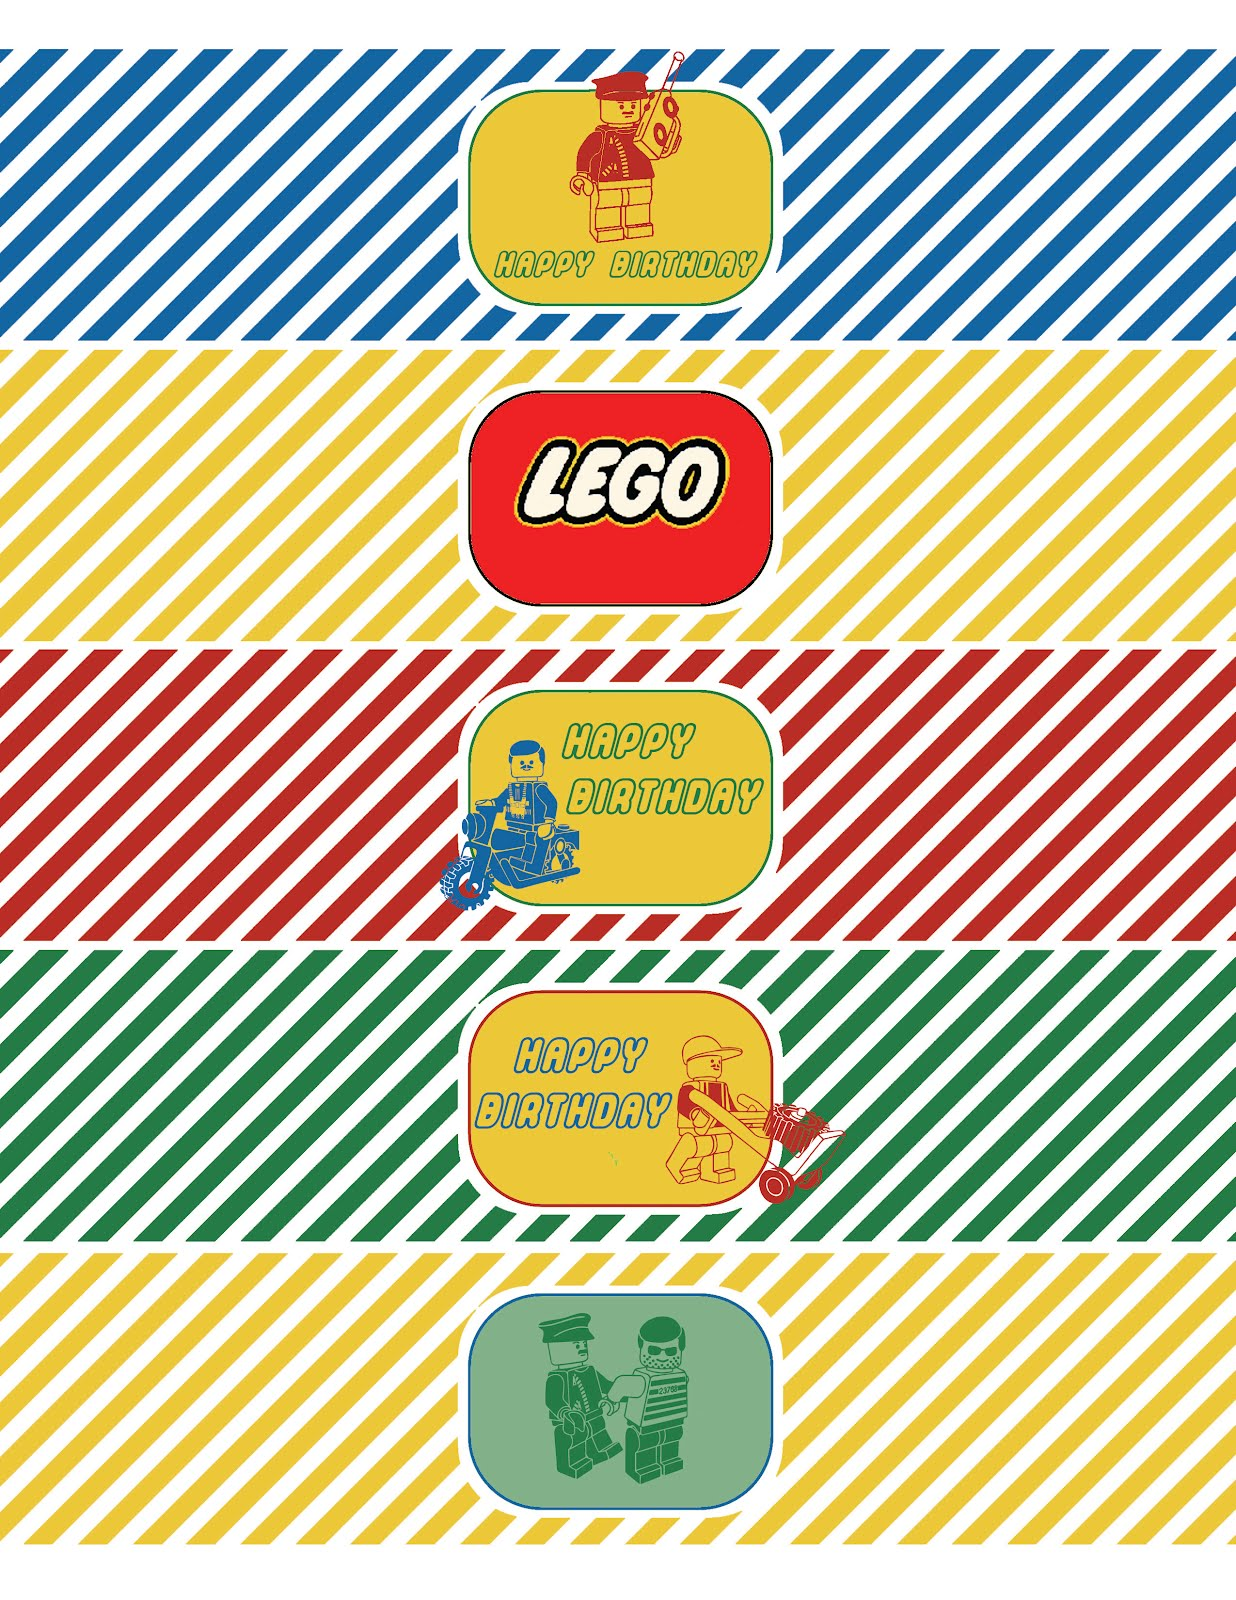 Whatpoppelinesees Classic Lego Inspired Printable